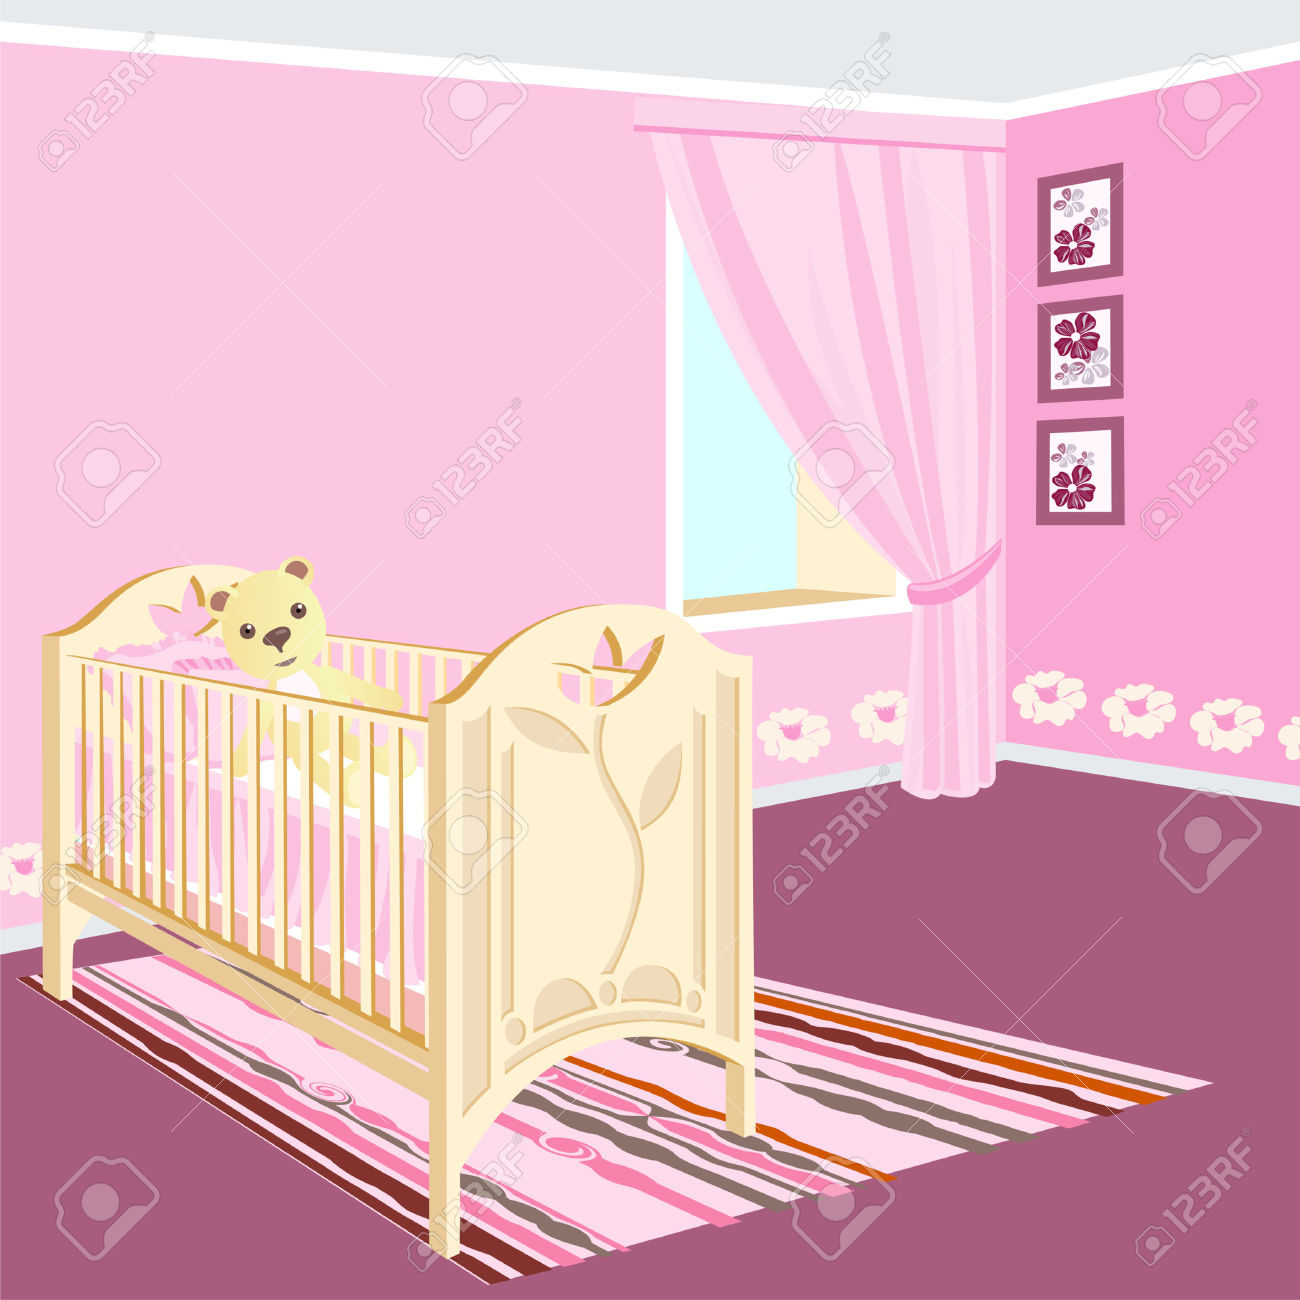 Baby girl room clipart png Baby girl room clipart - ClipartFest png